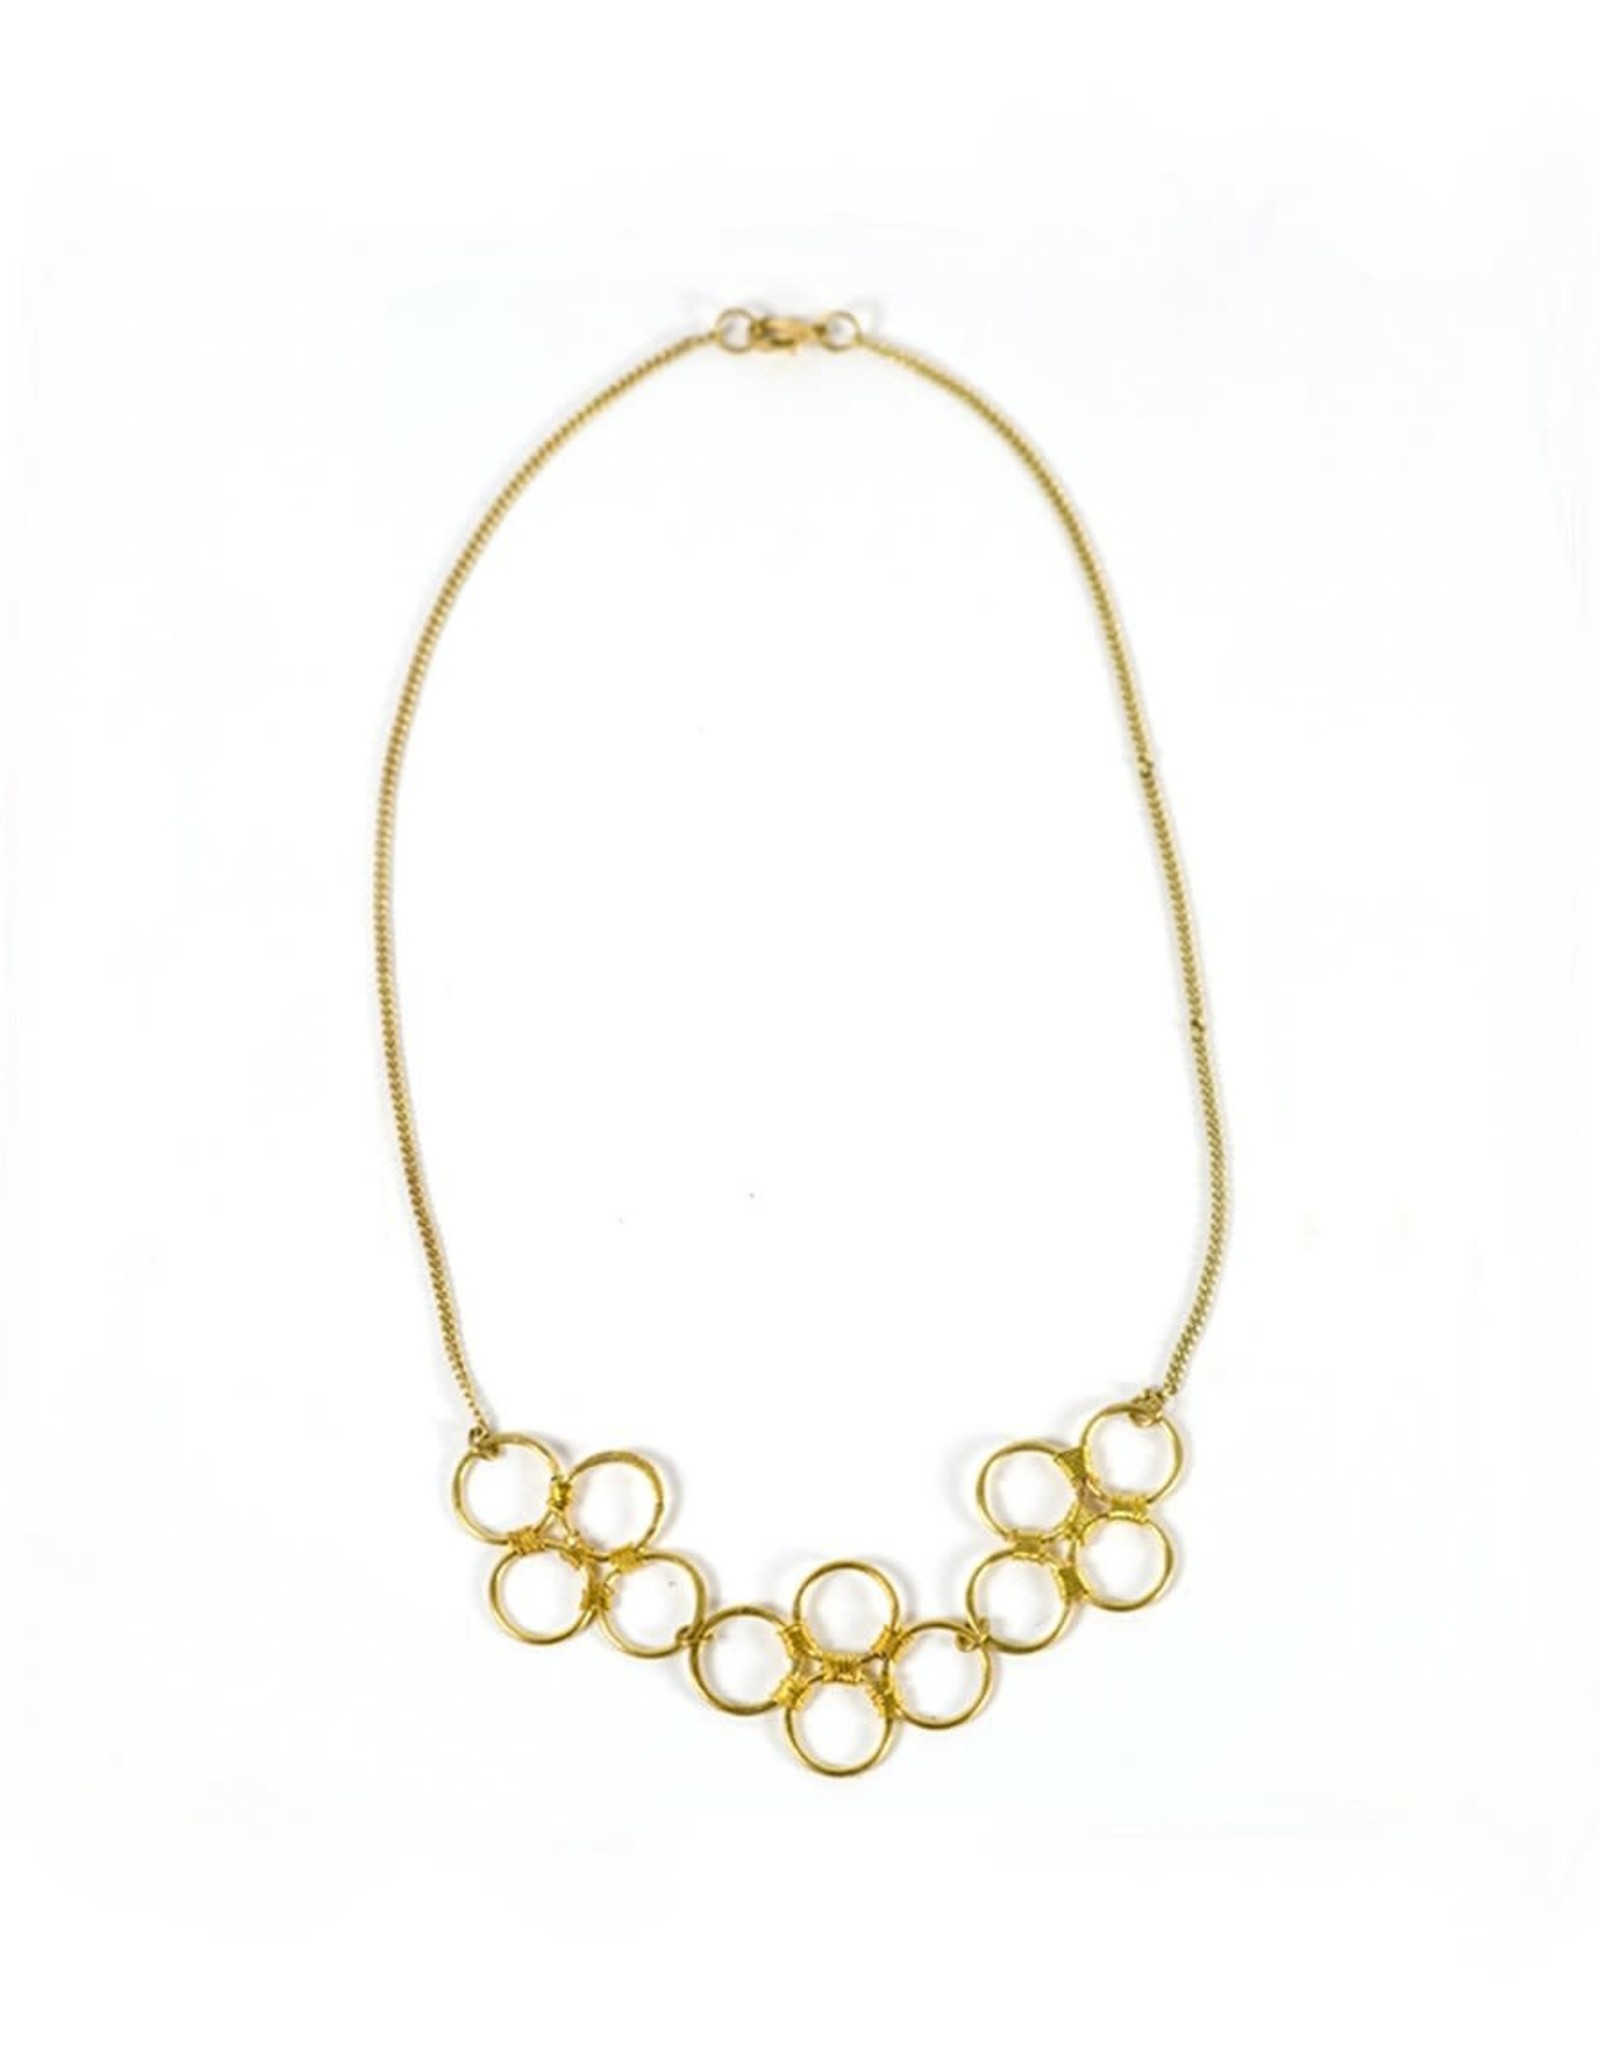 Matr Boomie Circles necklace